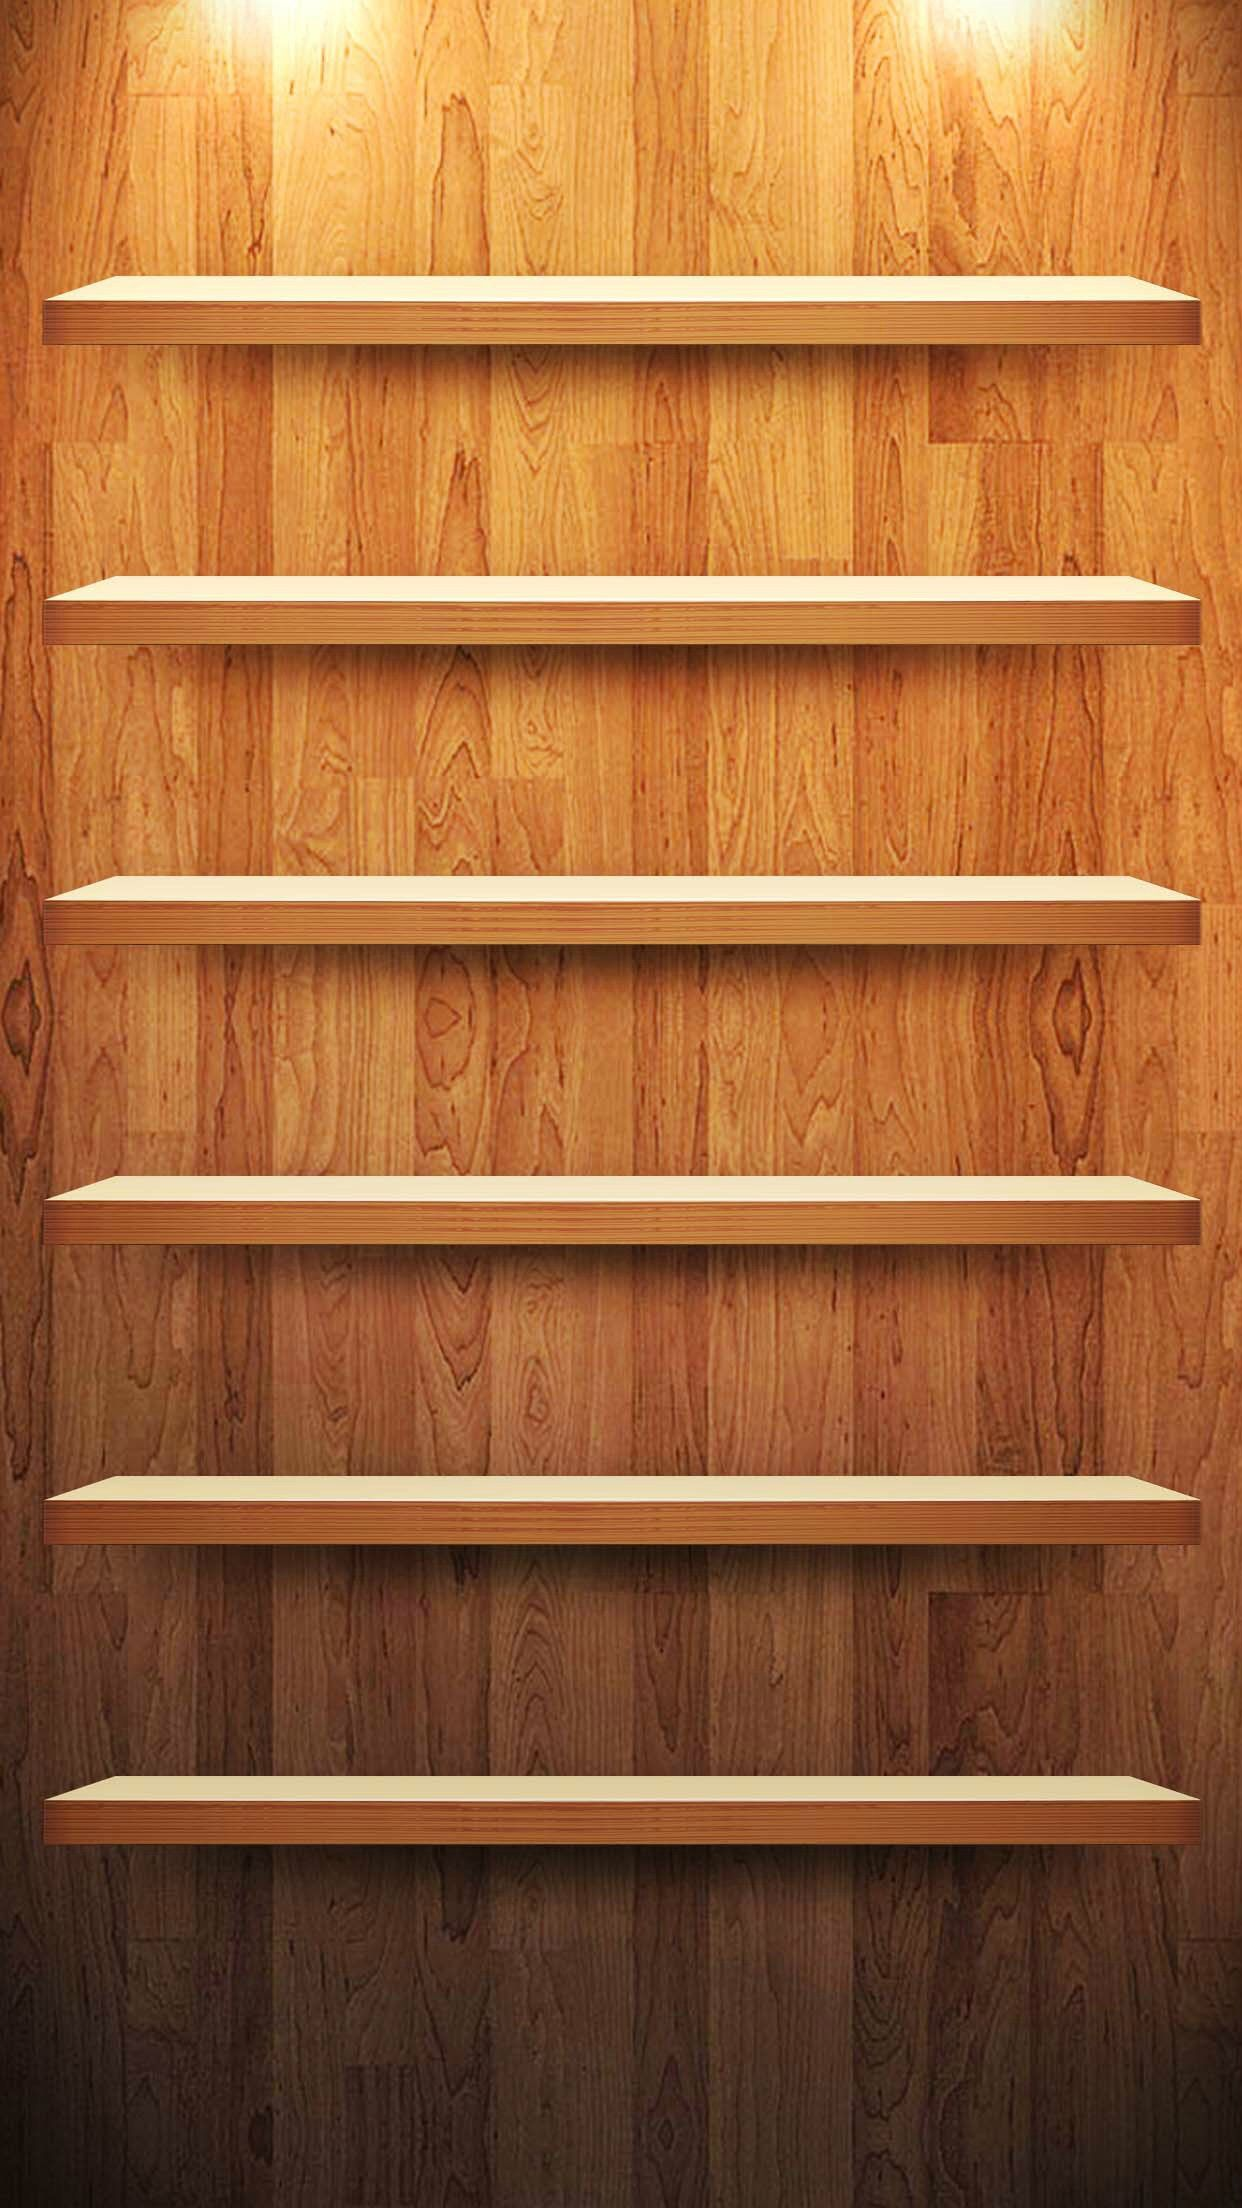 10 Creative Shelves Wallpapers For The Iphone 6 Plus Wallpaper Shelves Apple Wallpaper Iphone Homescreen Wallpaper